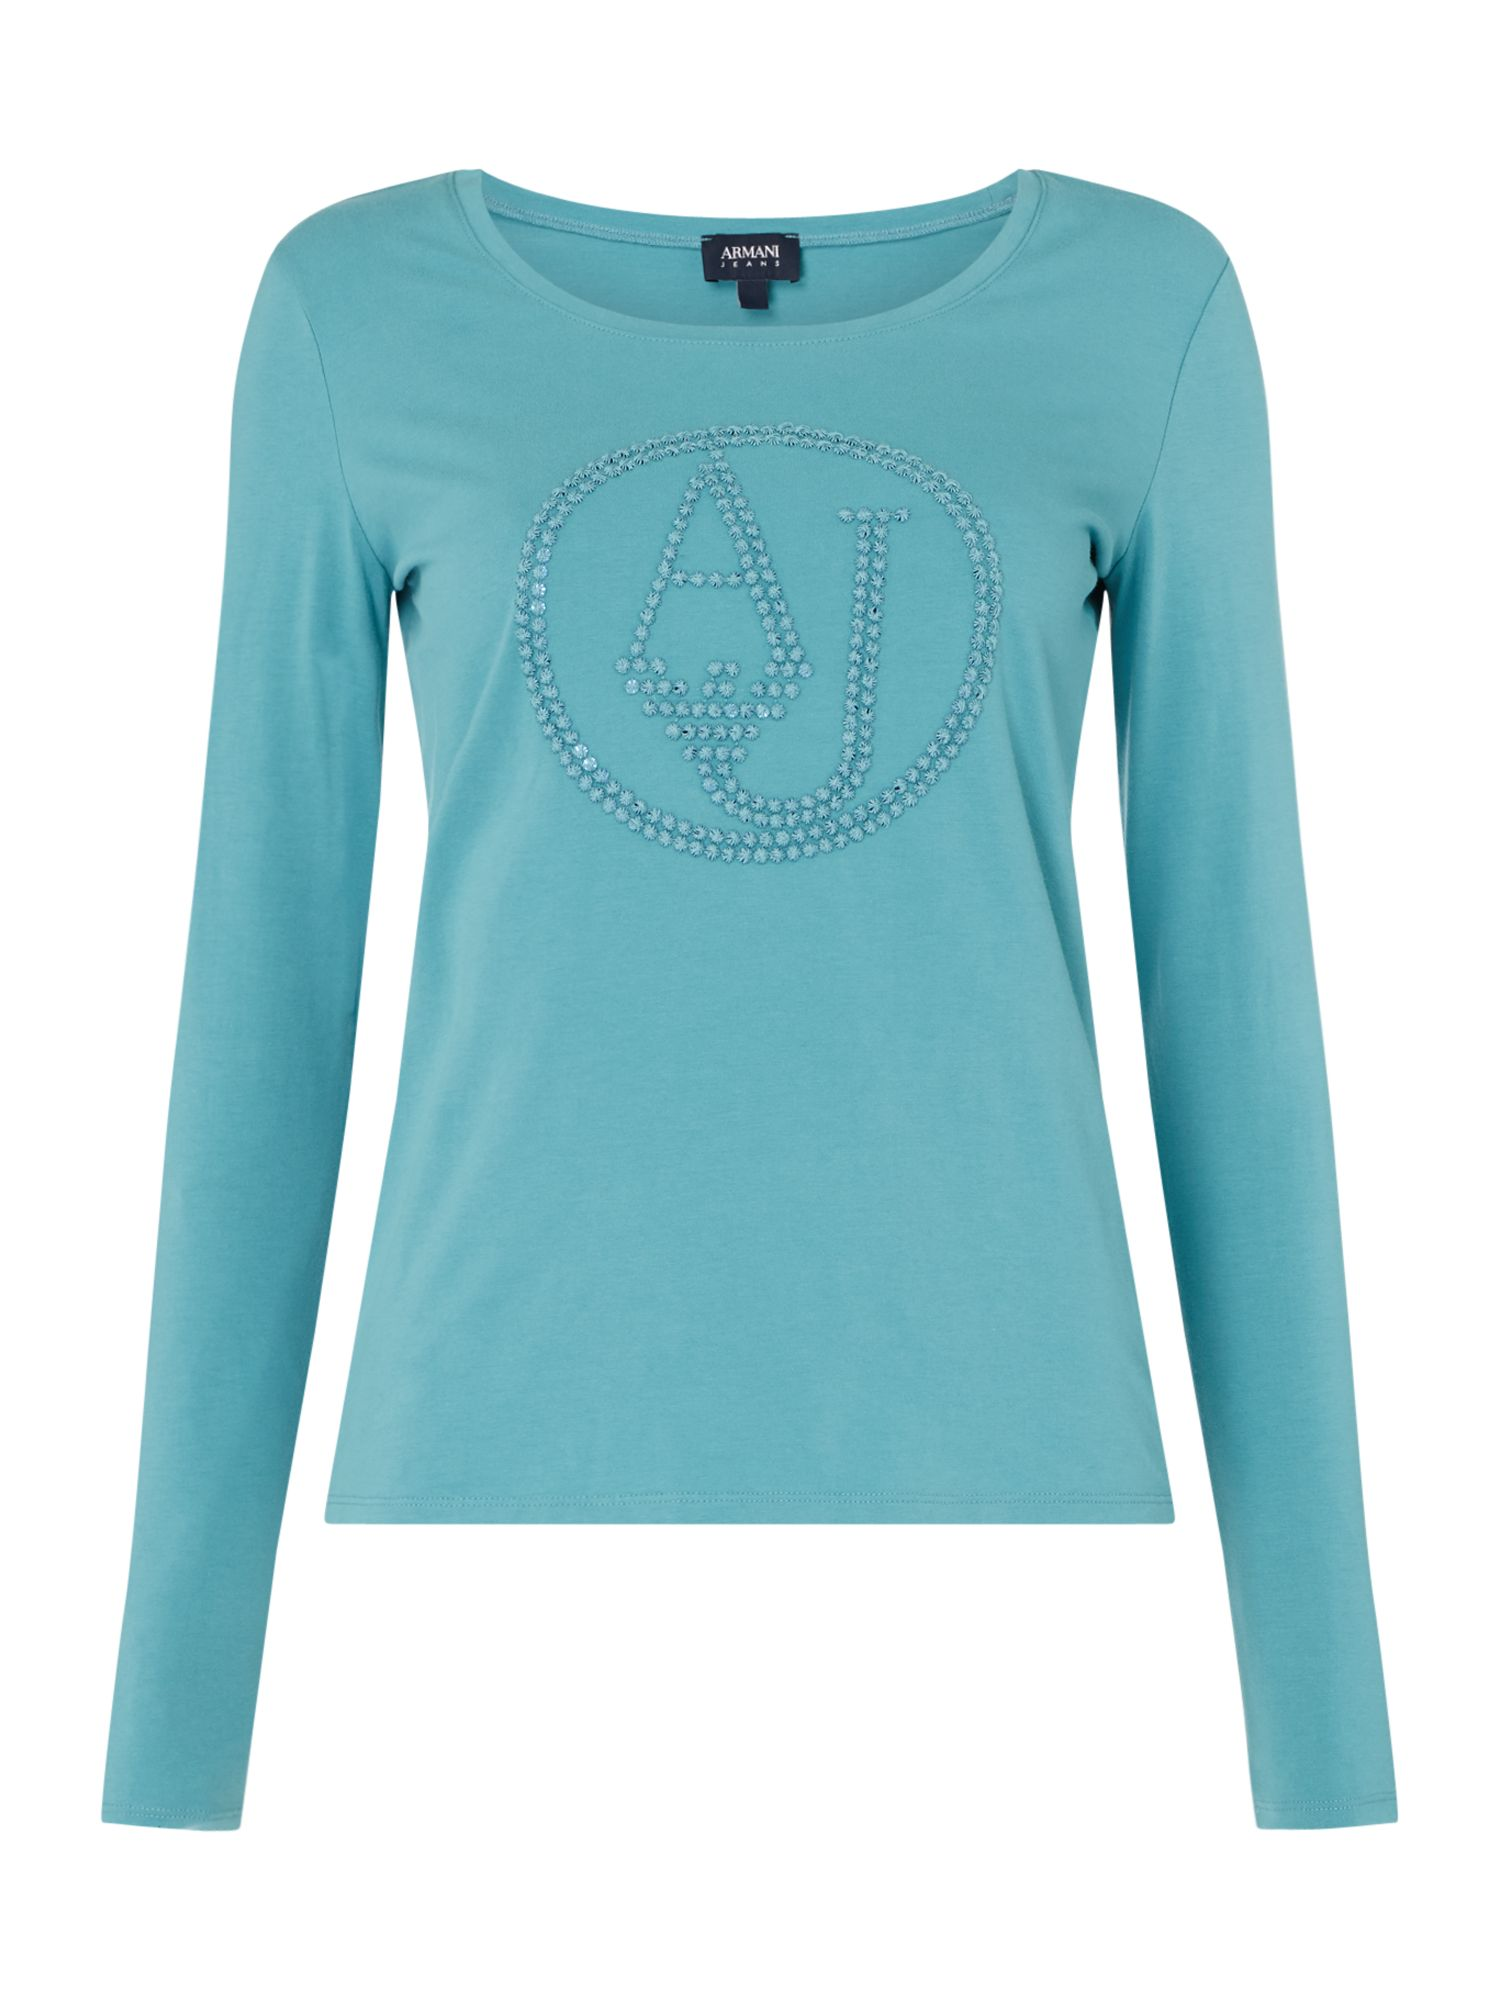 Armani Jeans Crew neck logo top in turchese, Turquoise